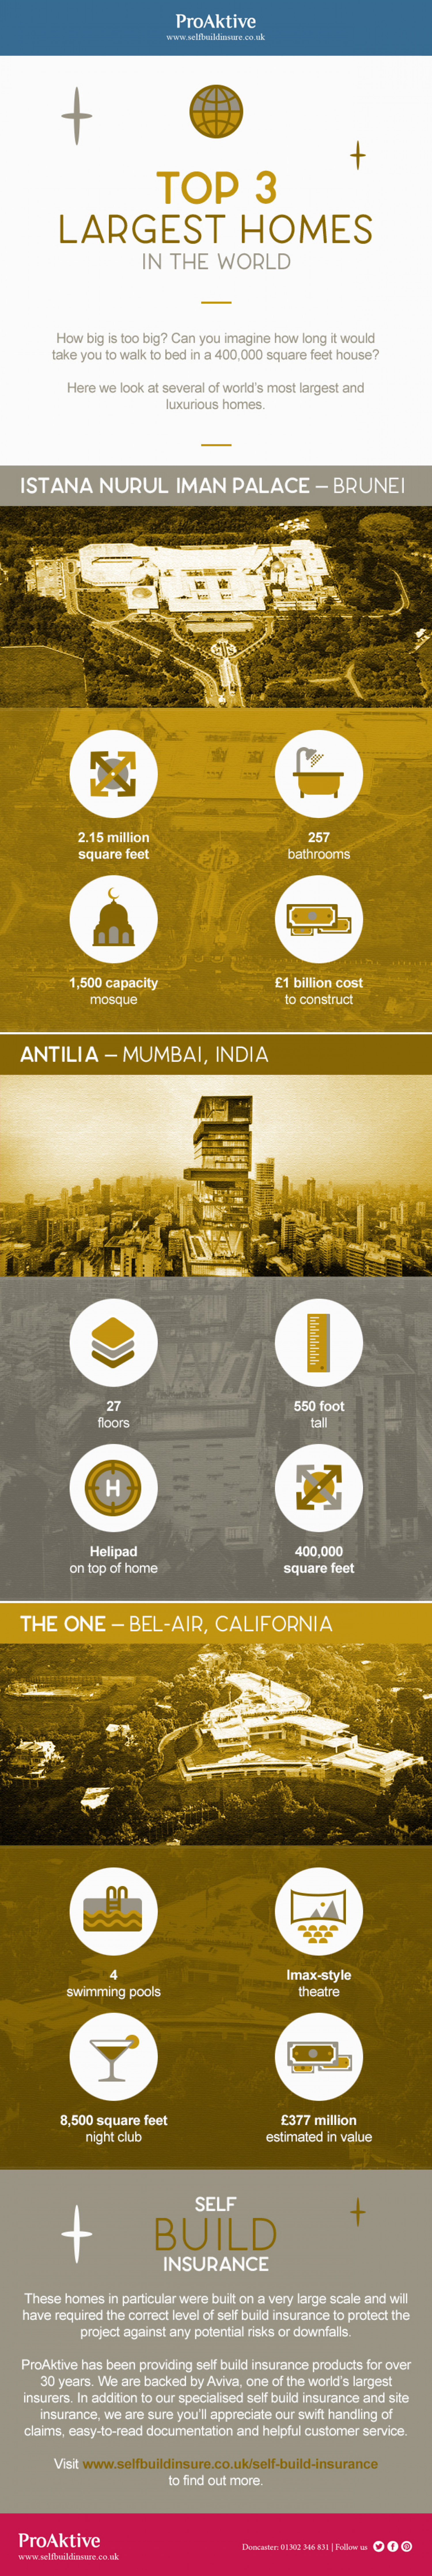 Top 3 Largest Homes in the World Infographic